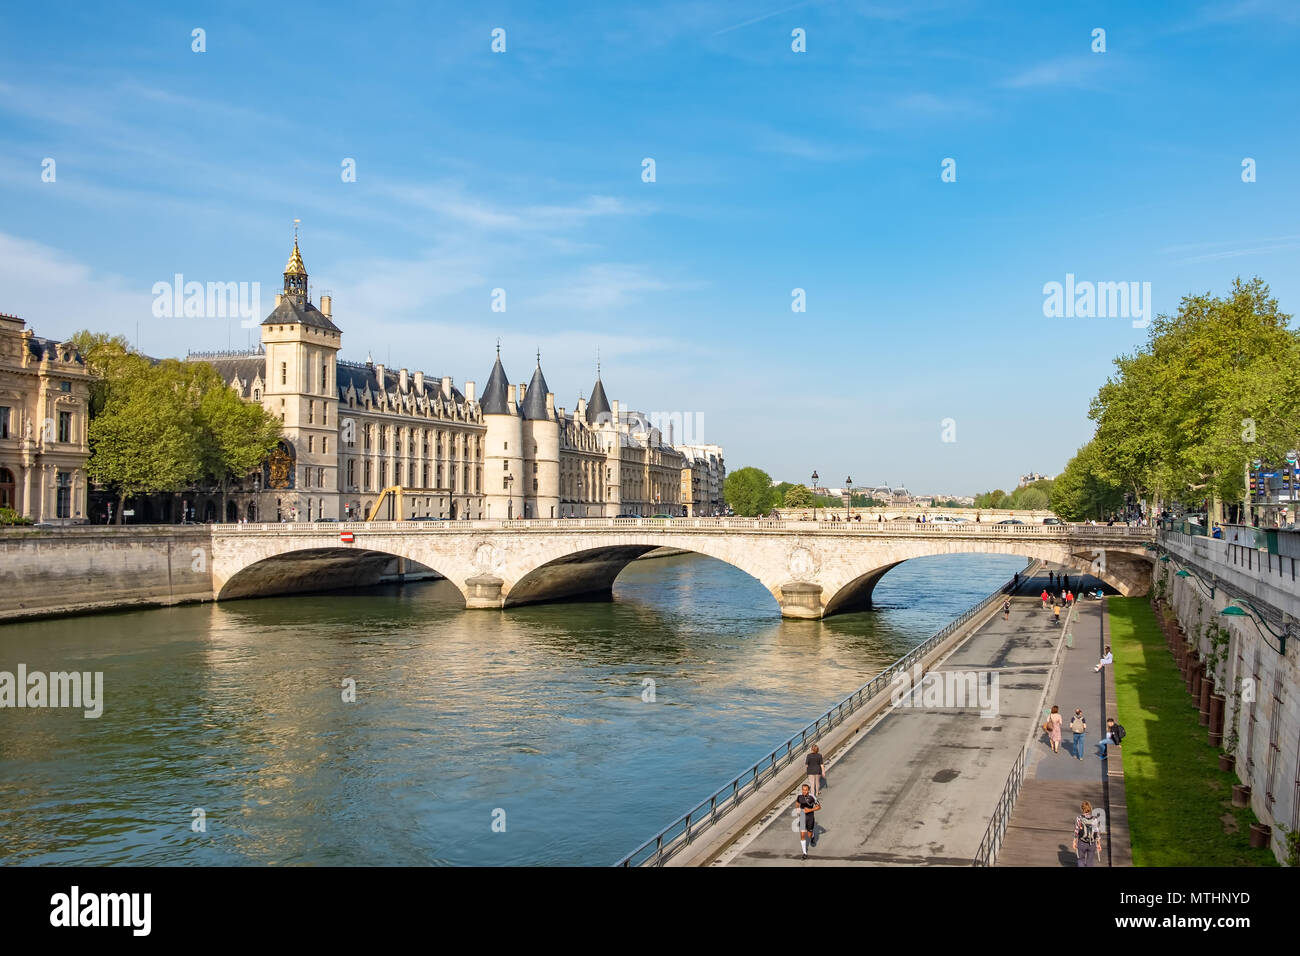 Seine River in Paris with the Conciergerie and Pont au Change in the background. - Stock Image